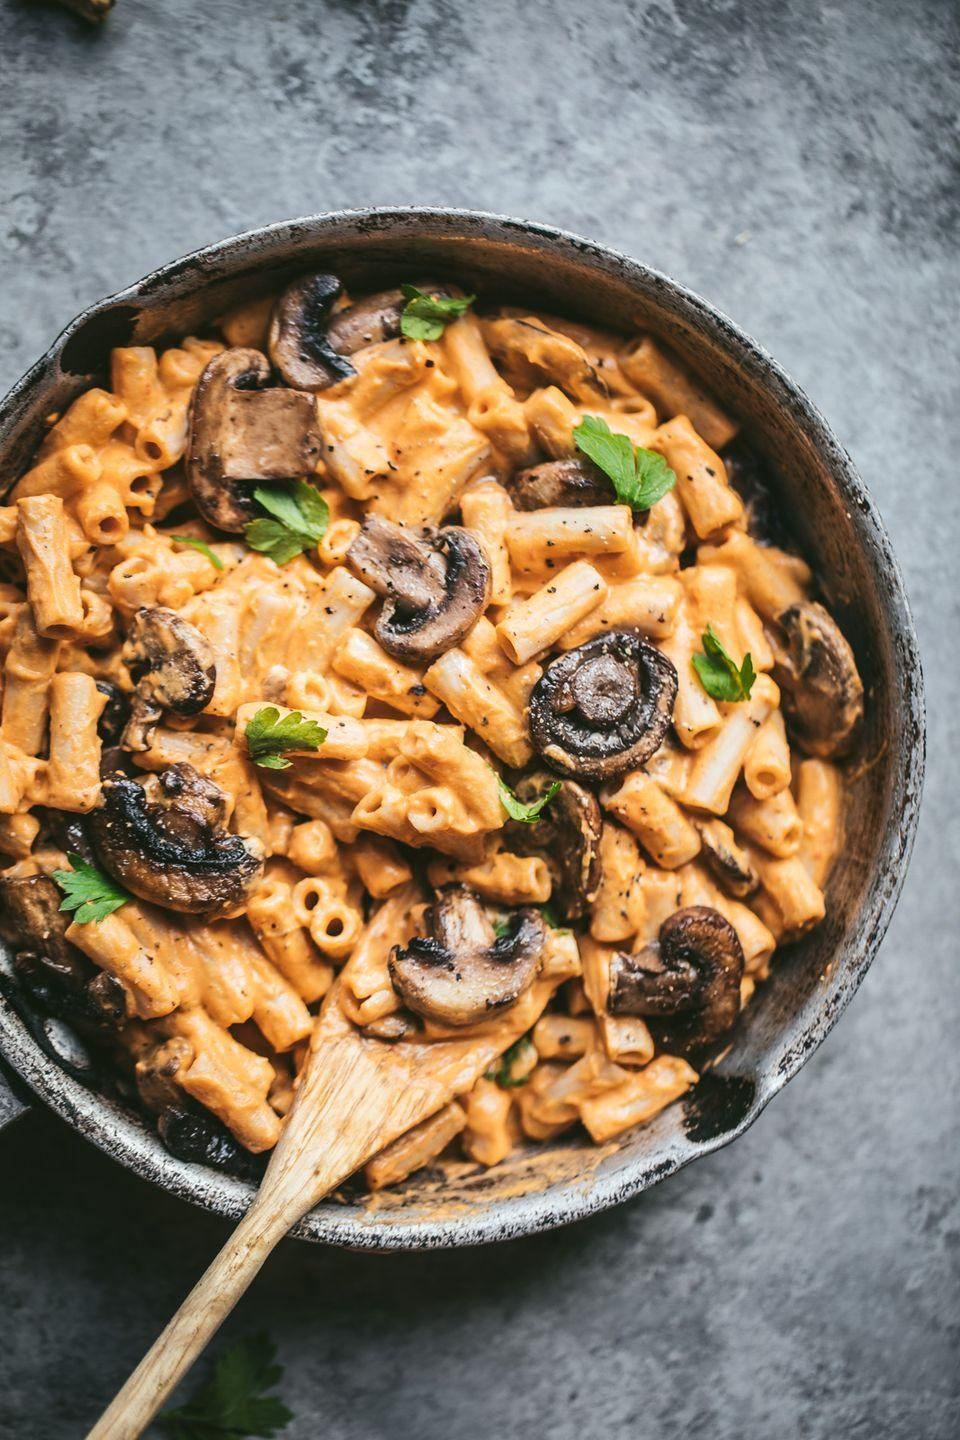 """<p>The creamy sauce is actually vegan and made out of sweet potatoes, cashews, and chipotle peppers.</p><p><strong>Get the recipe at <a href=""""https://www.ambitiouskitchen.com/creamy-chipotle-sweet-potato-penne-pasta/"""" rel=""""nofollow noopener"""" target=""""_blank"""" data-ylk=""""slk:Ambitious Kitchen"""" class=""""link rapid-noclick-resp"""">Ambitious Kitchen</a>.</strong></p><p><strong><a class=""""link rapid-noclick-resp"""" href=""""https://www.amazon.com/Stainless-Steel-Skillet-Glass-Cover/dp/B01D0MDZRO/ref=sr_1_5?tag=syn-yahoo-20&ascsubtag=%5Bartid%7C10050.g.1487%5Bsrc%7Cyahoo-us"""" rel=""""nofollow noopener"""" target=""""_blank"""" data-ylk=""""slk:SHOP SKILLETS"""">SHOP SKILLETS</a><br></strong></p>"""